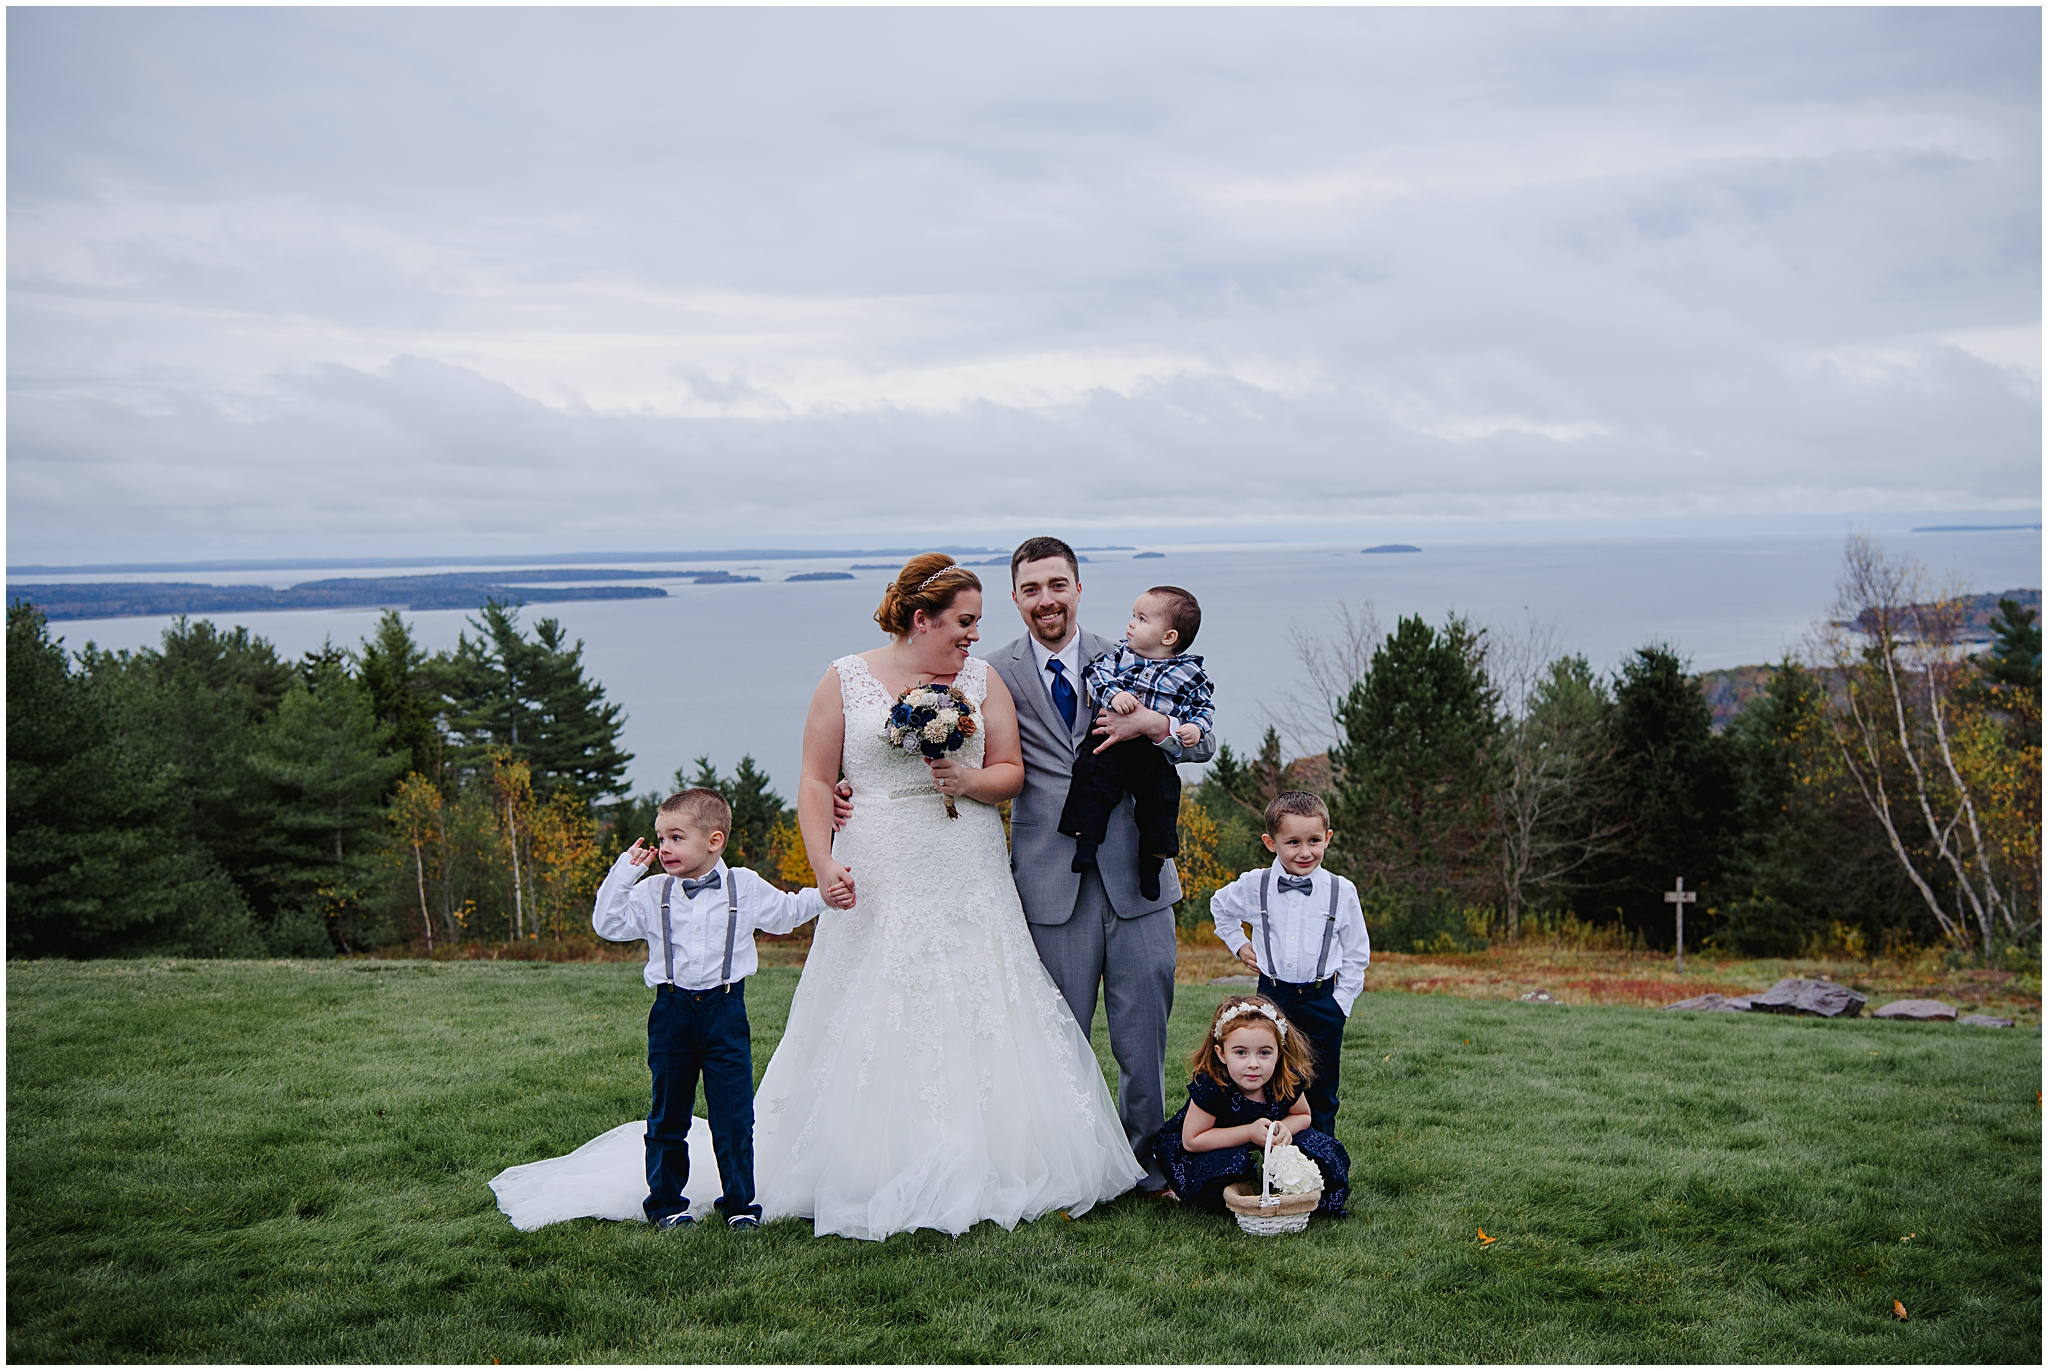 Maine wedding photographer, New England wedding photographer, Maine elopement Photographer